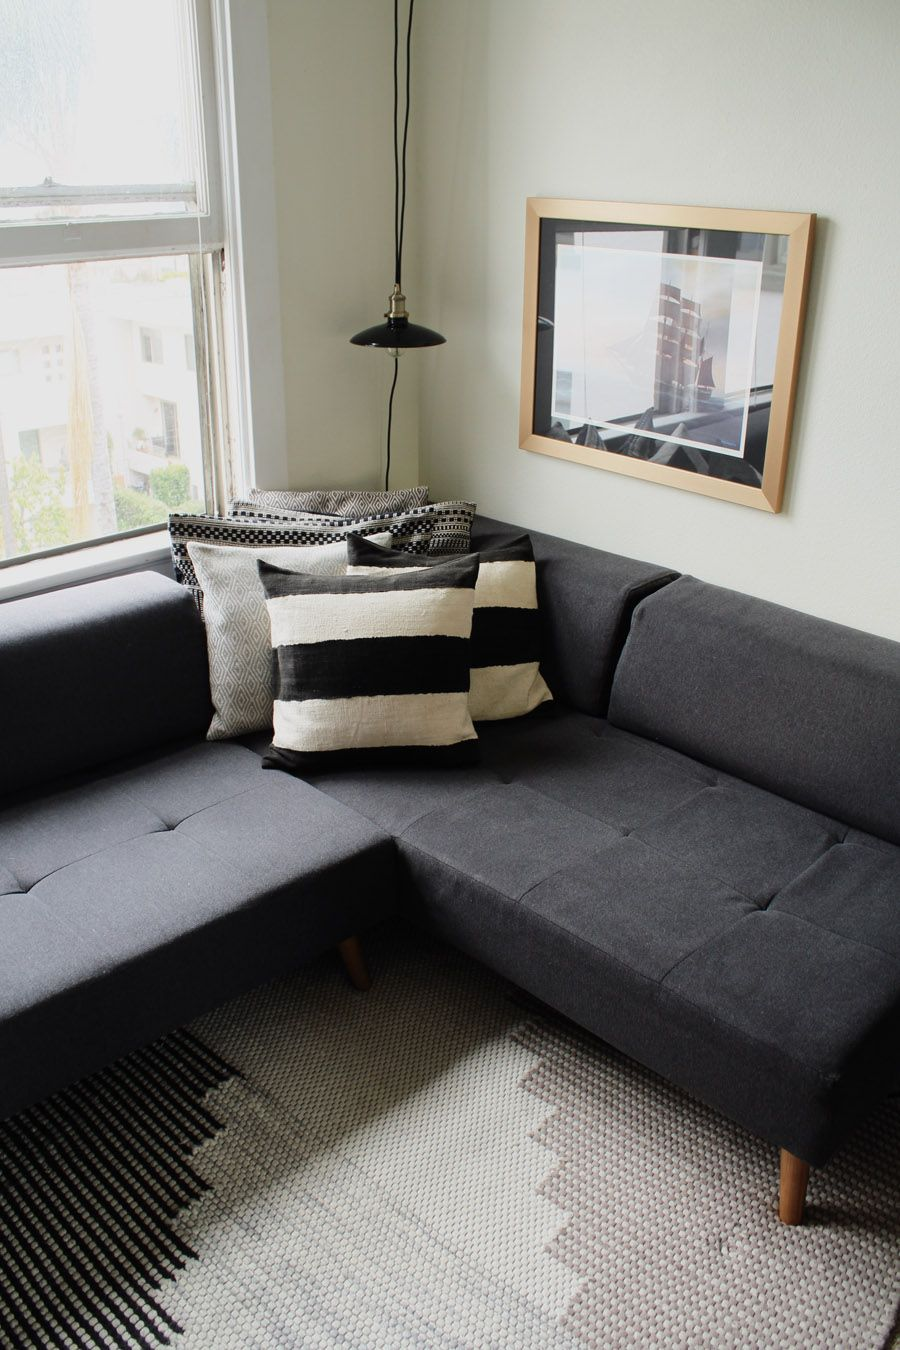 Fitting A Home Into 200 Square Feet Front Main Couches For